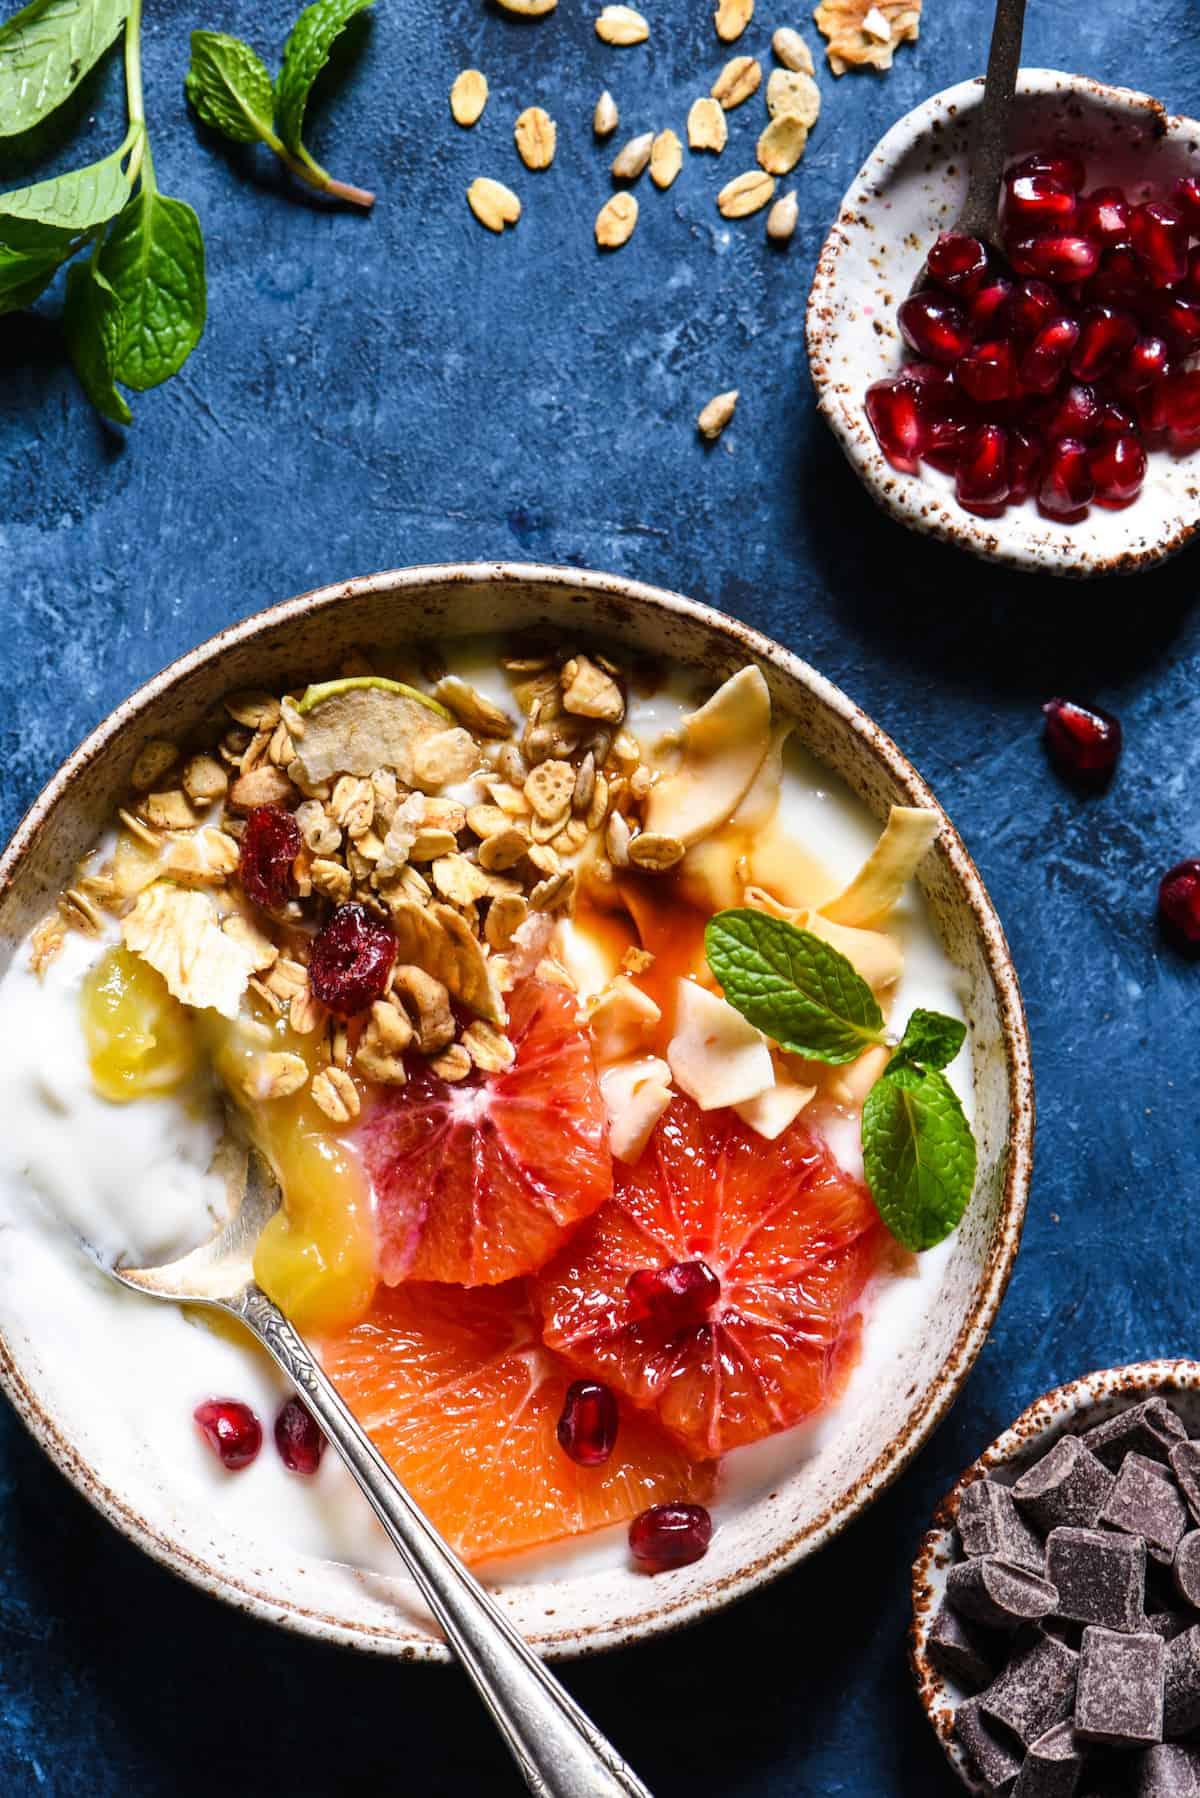 Winter Citrus Parfait Bar - Make breakfast exciting again with easy homemade granola, fresh citrus and a bunch of fun toppings!   foxeslovelemons.com